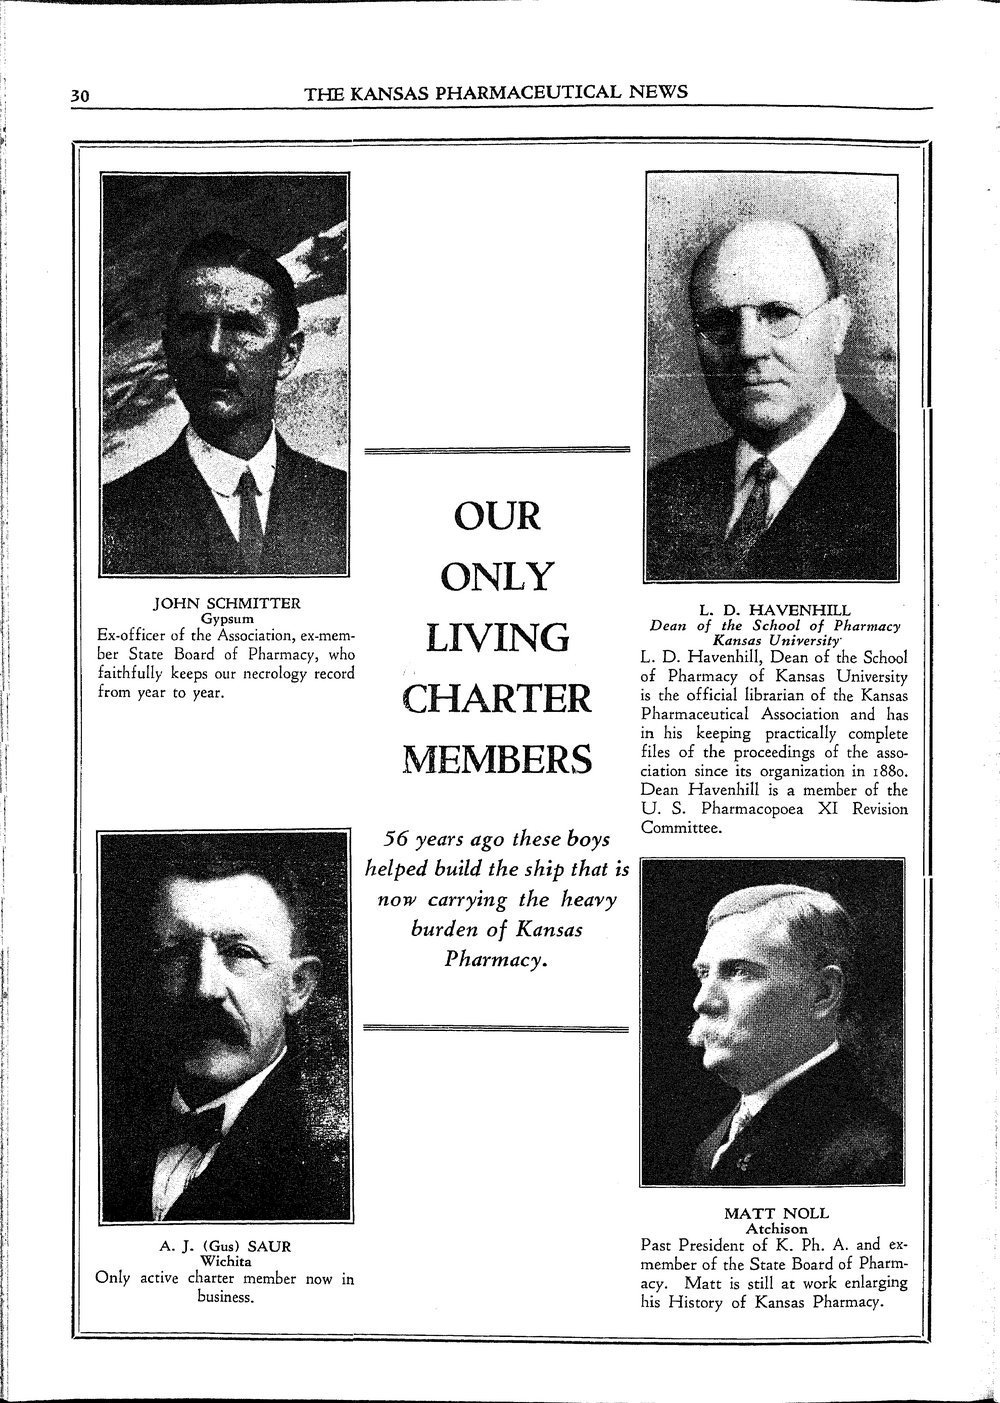 Living charter members of the Kansas Pharmaceutical Association